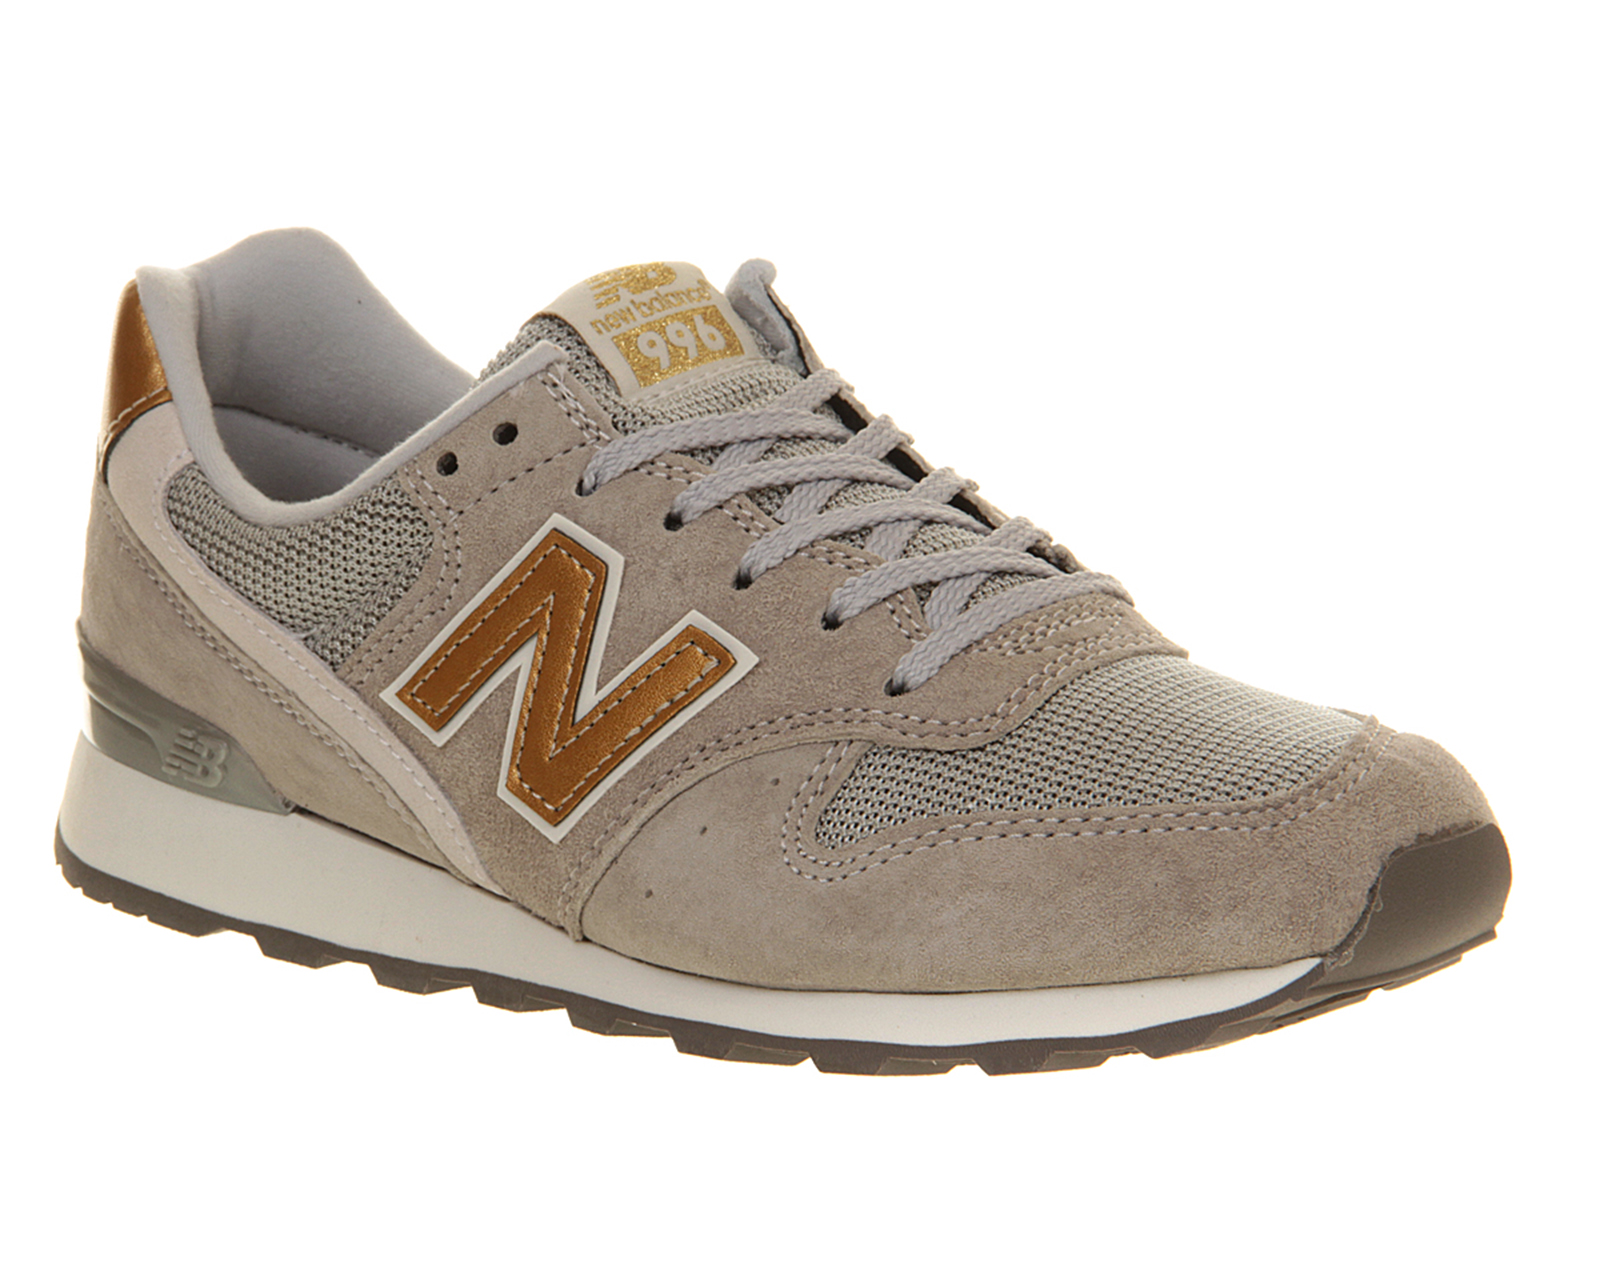 new balance wr996 grey gold silver trainers shoes ebay. Black Bedroom Furniture Sets. Home Design Ideas